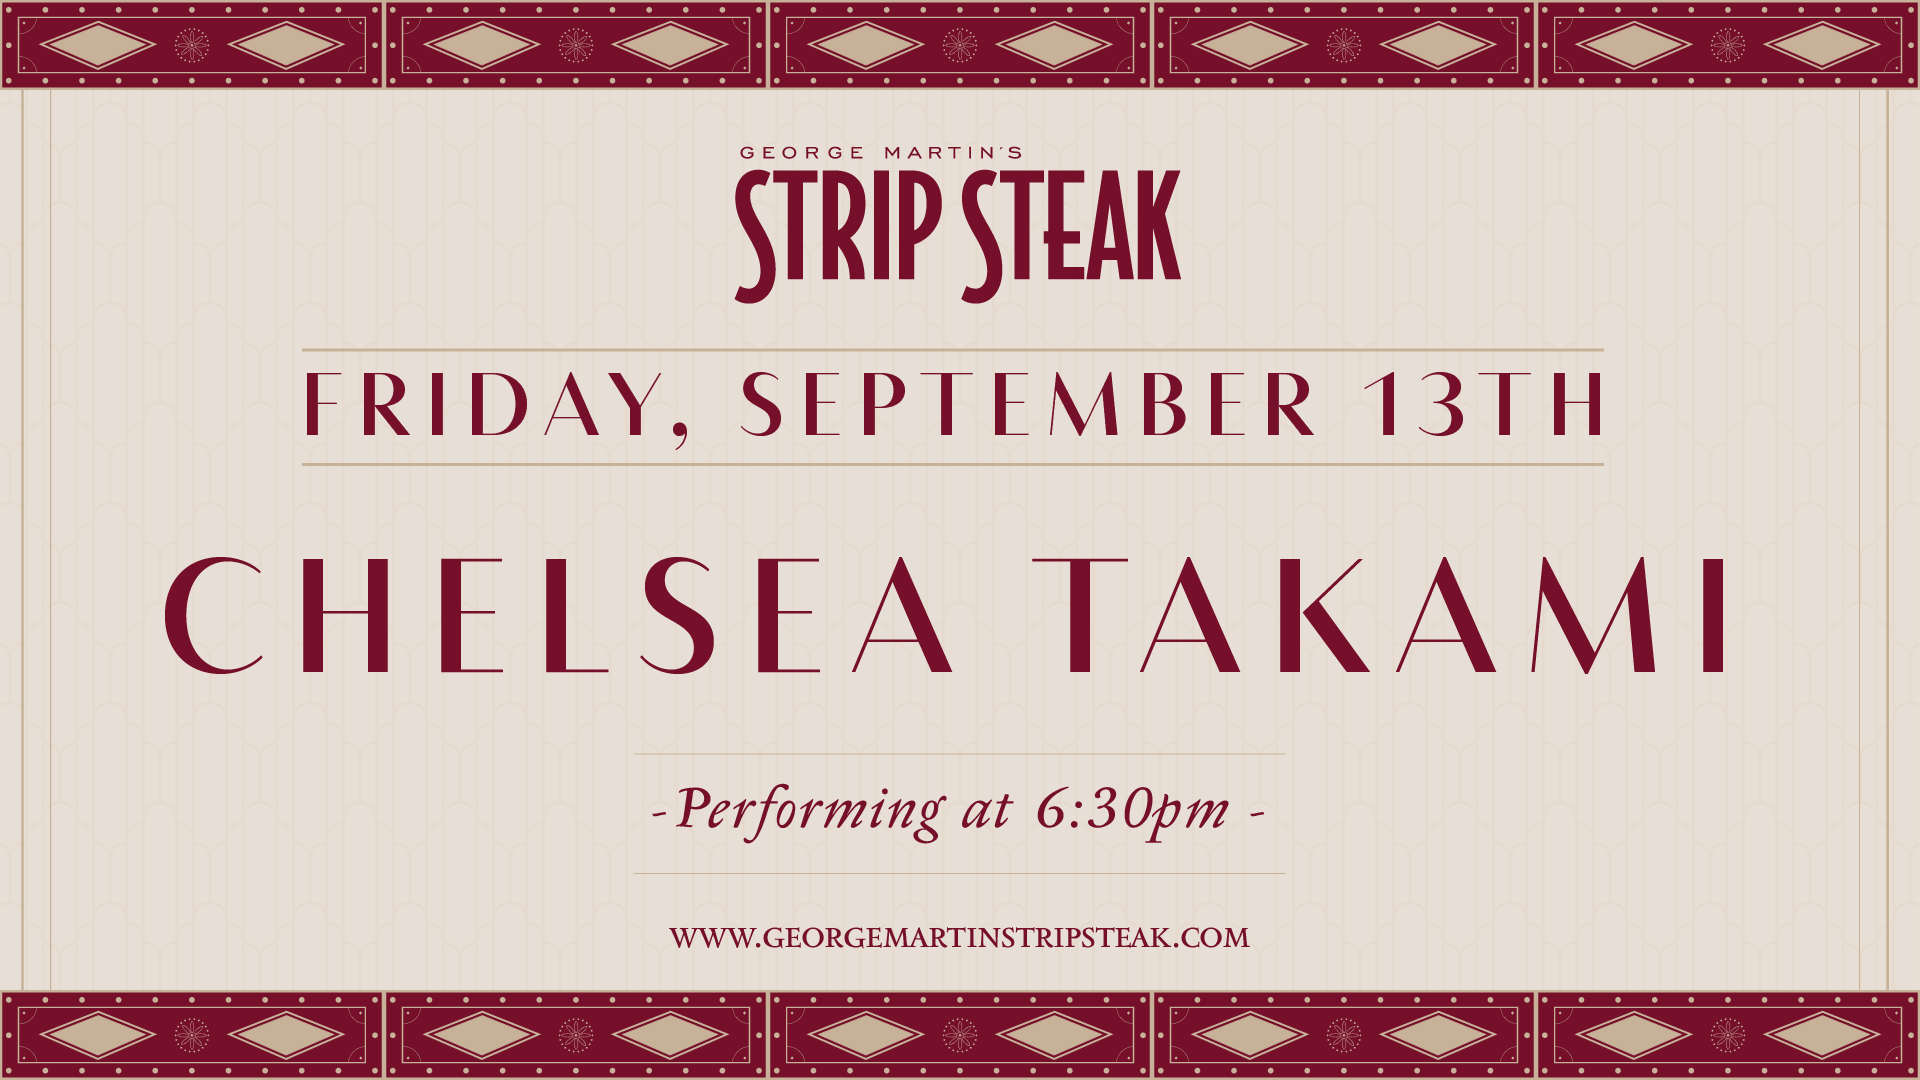 Flyer for Chelsea Takami on Friday, September 13th at 6:30pm